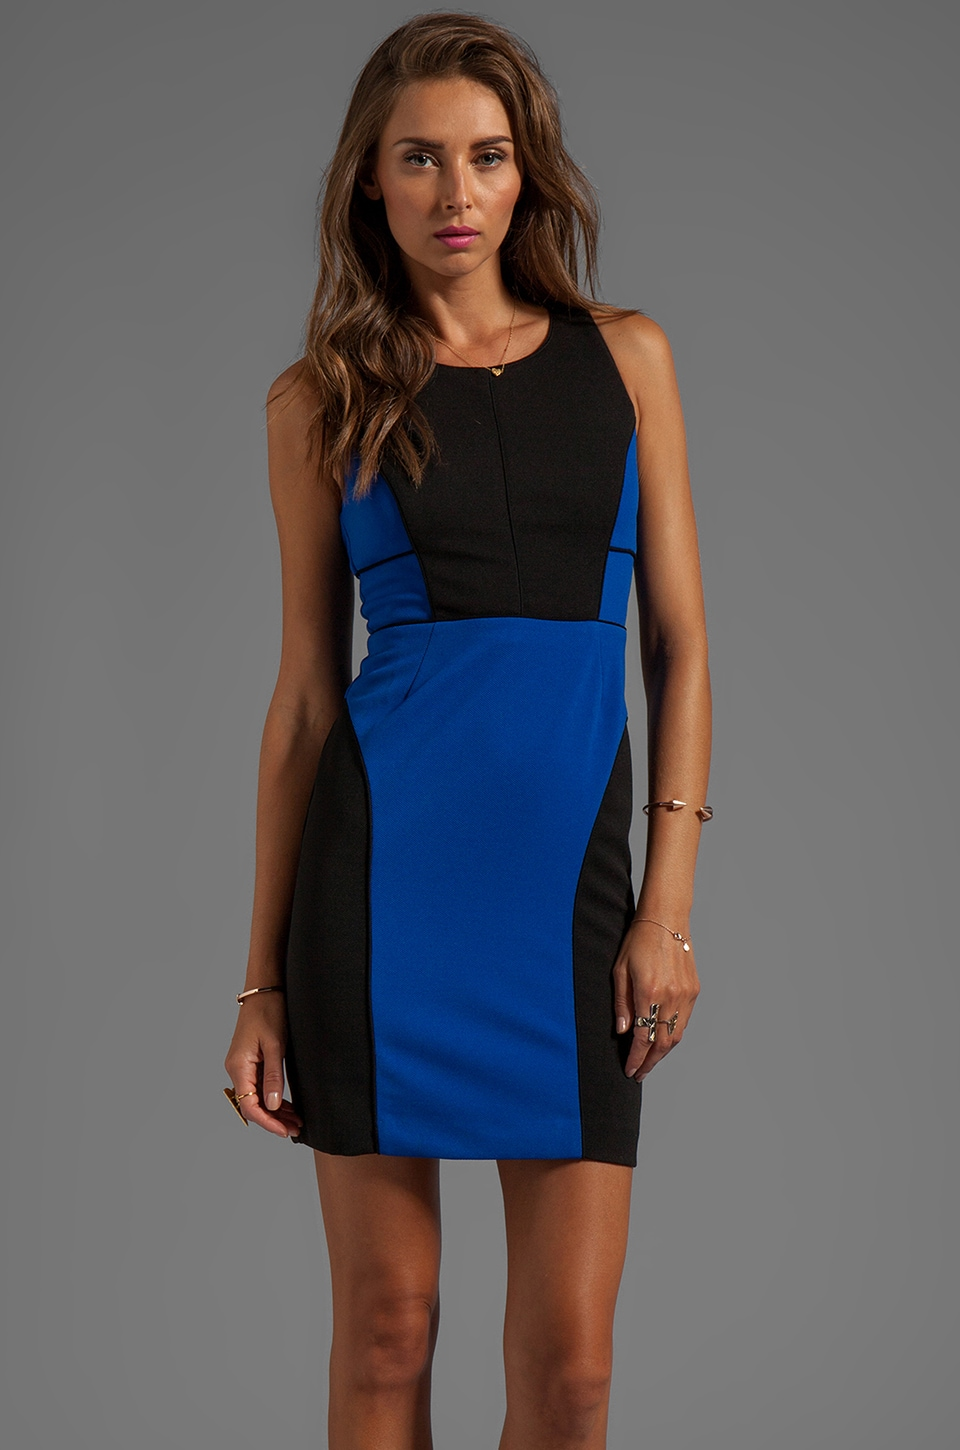 Greylin Angelina Color Blocked Dress in Blue